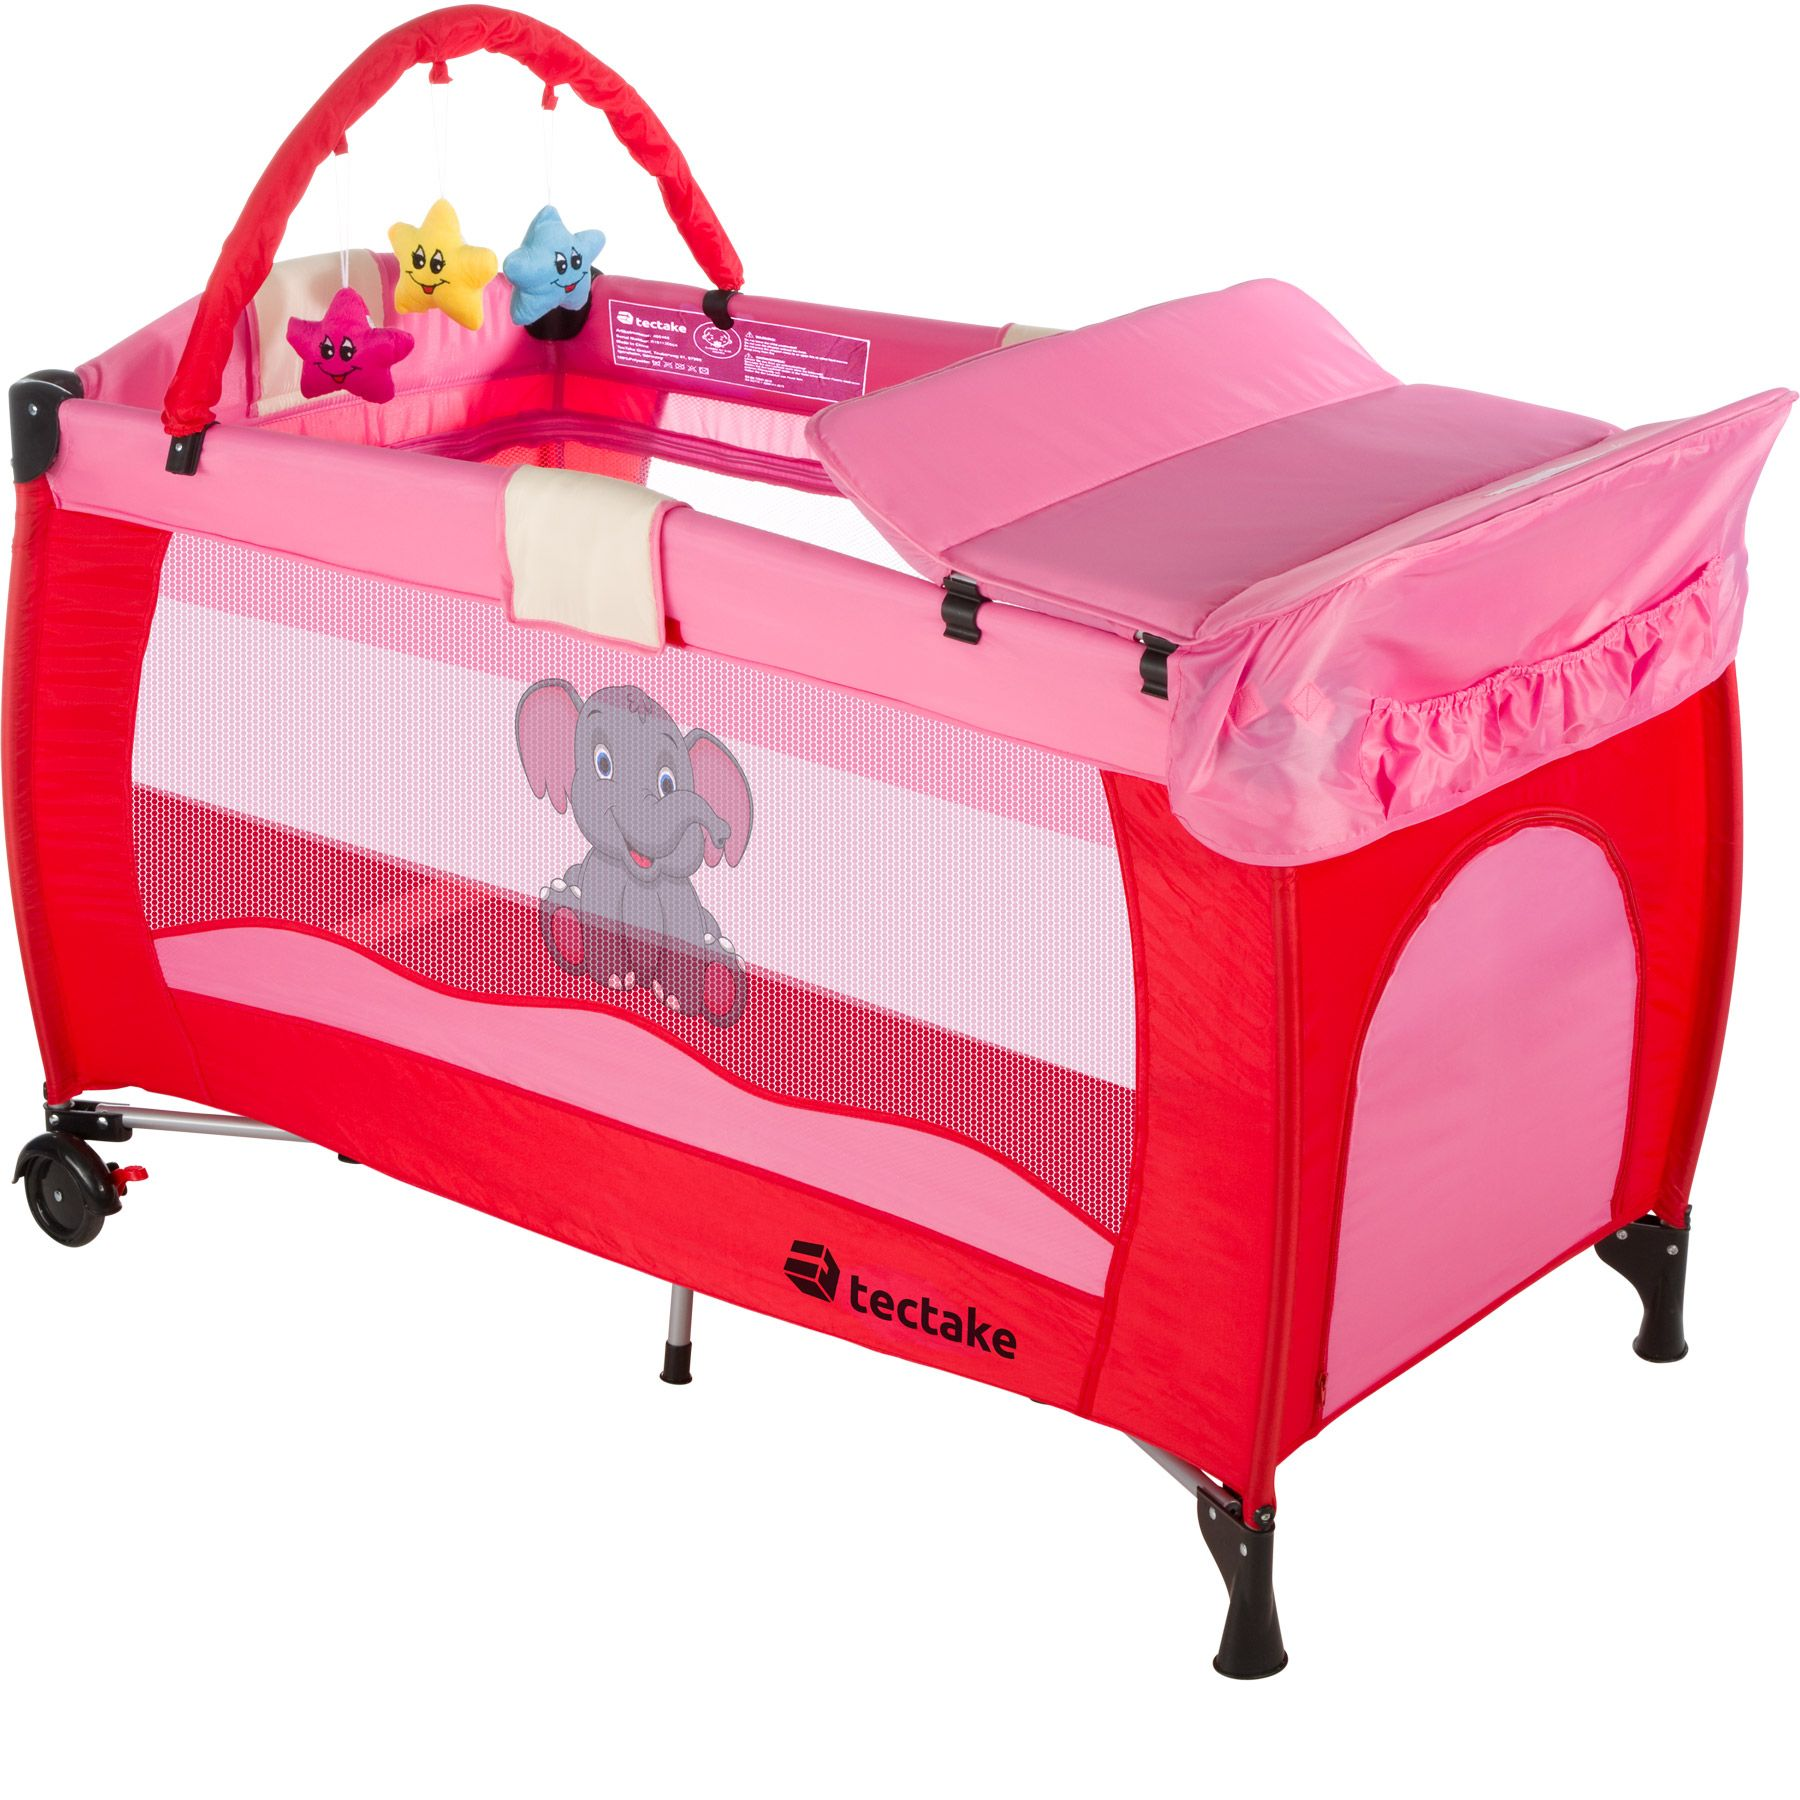 Portable Child Baby Infant Travel Cot Bed Playpen With